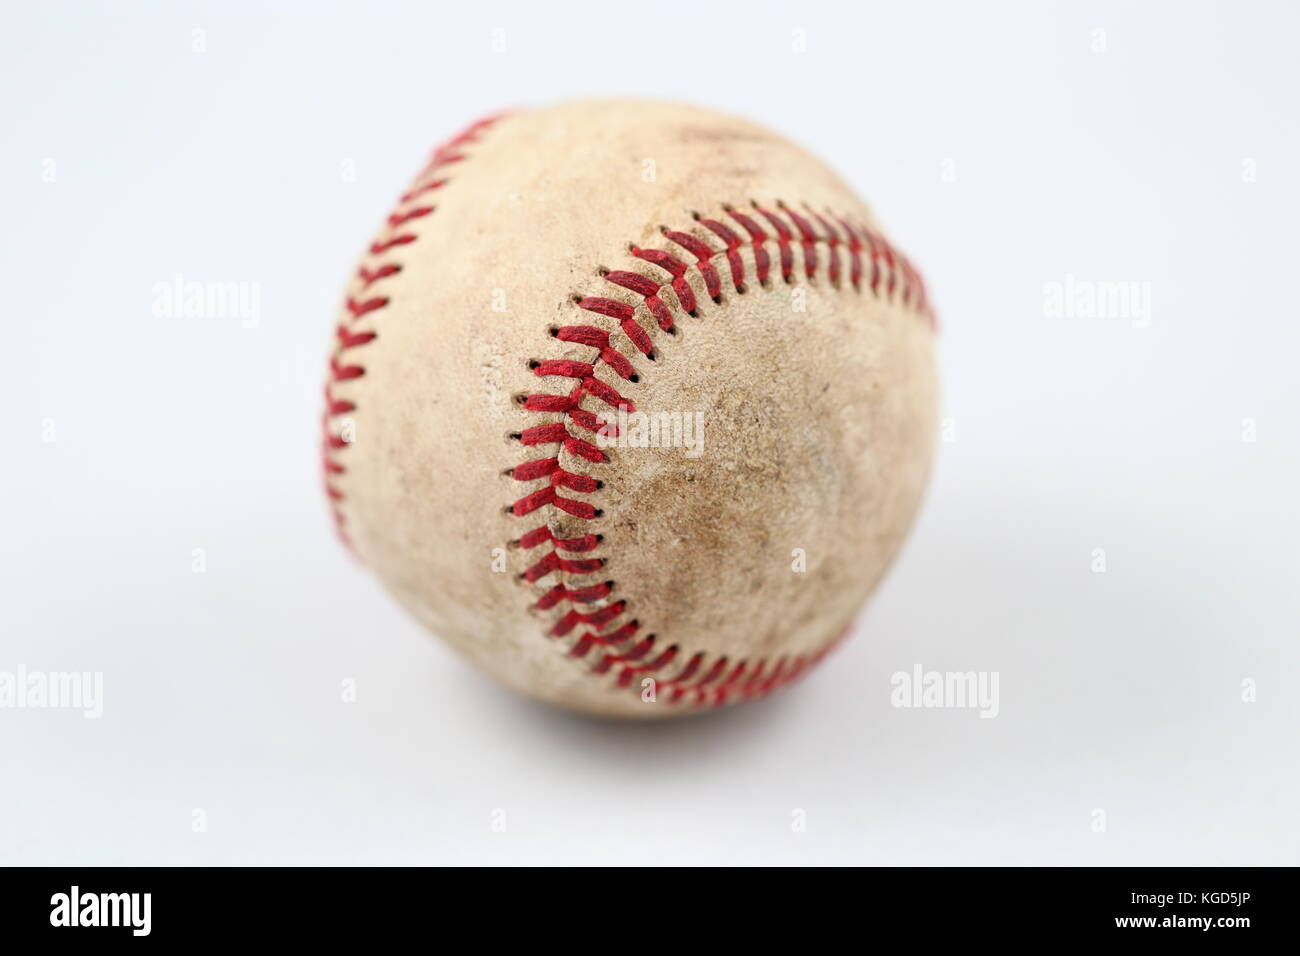 Isolated image of used baseball in white background - Stock Image